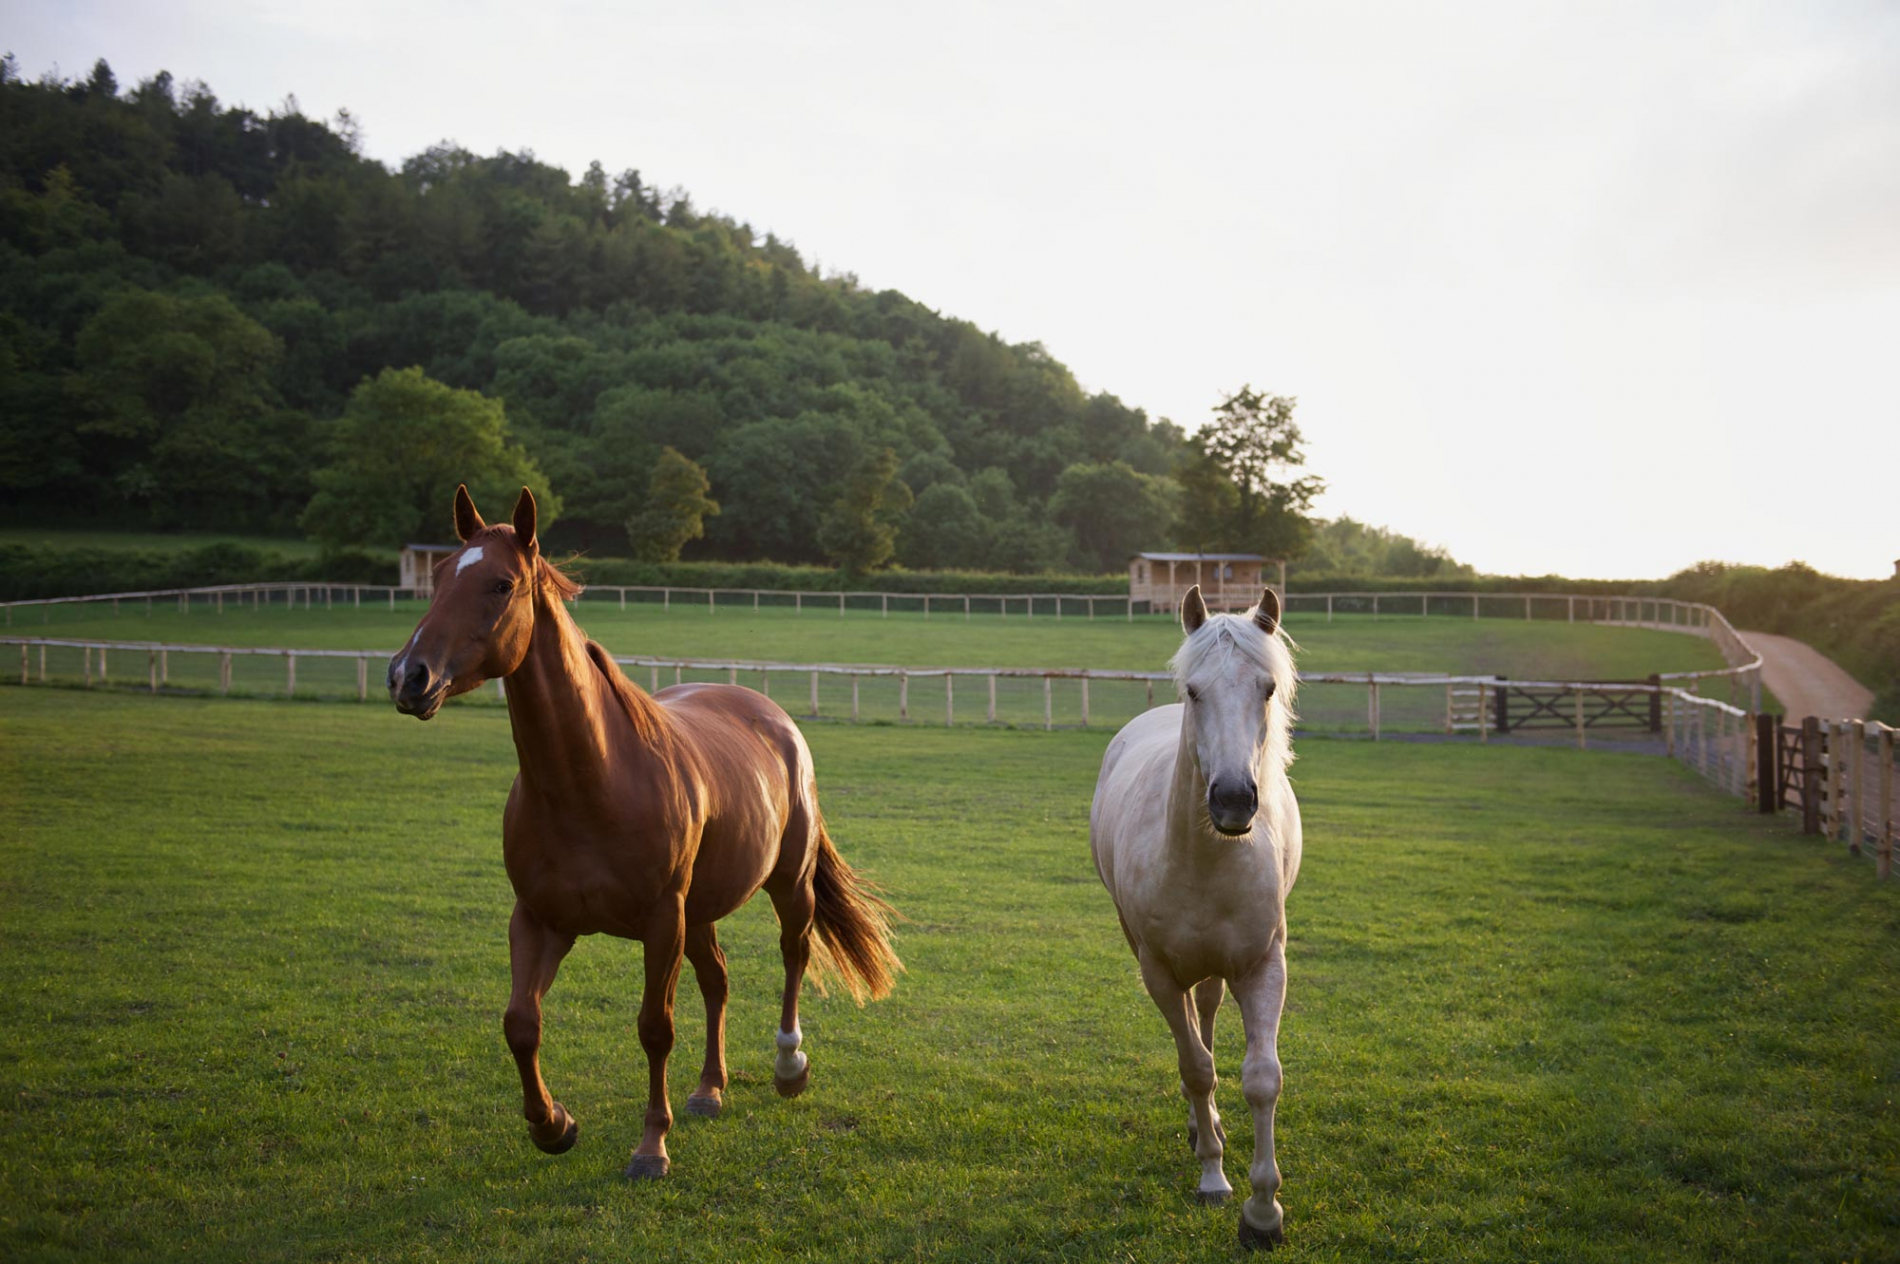 Beautiful horses at play